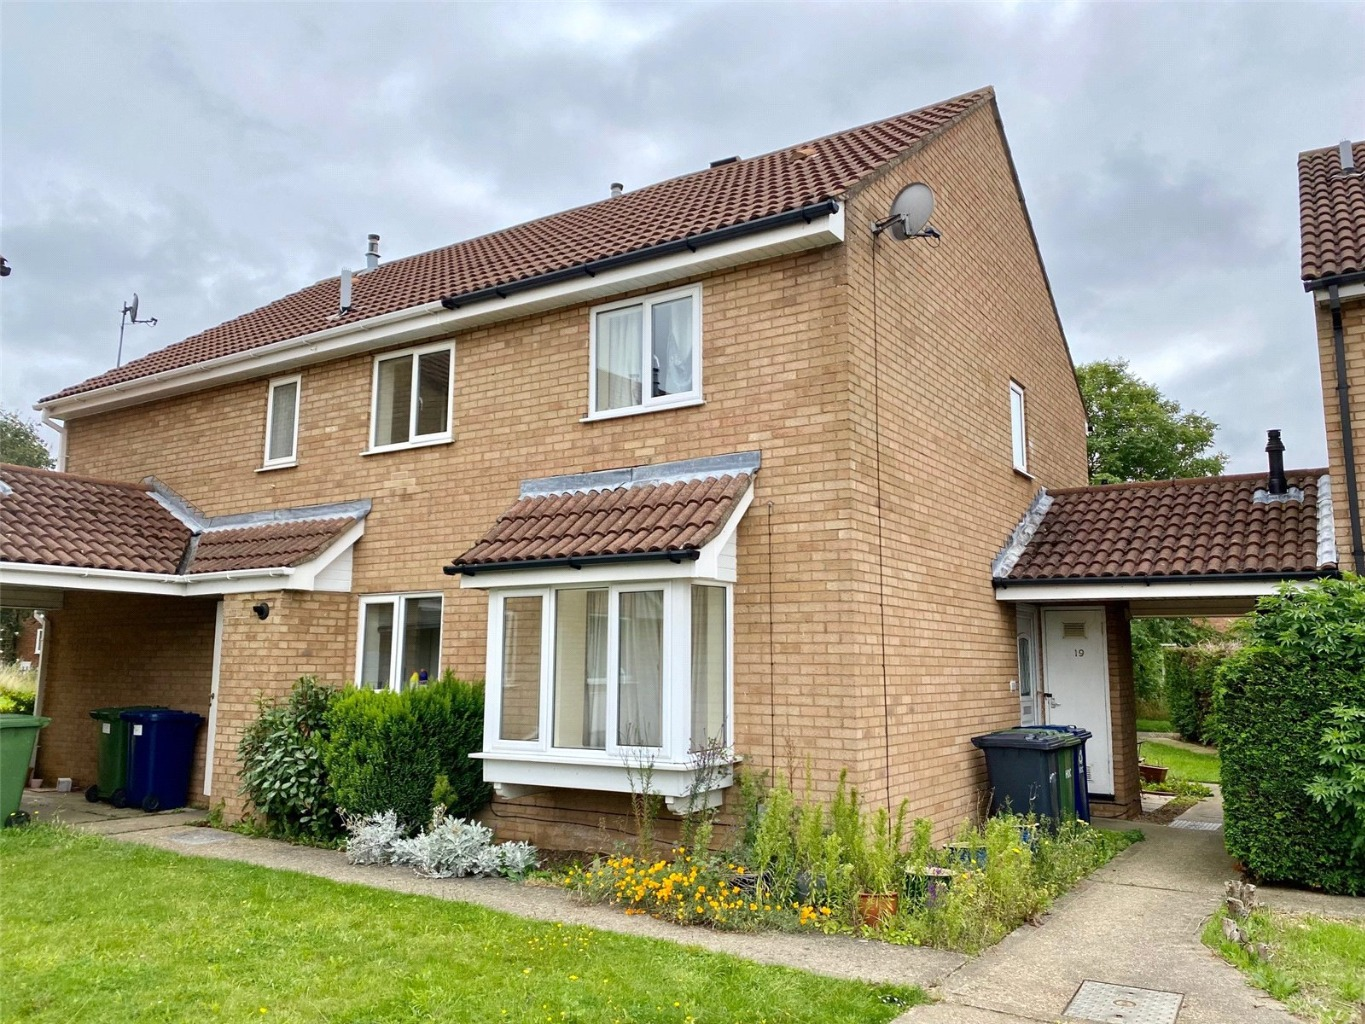 2 bed end of terrace house for sale in Roe Green, St. Neots  - Property Image 1